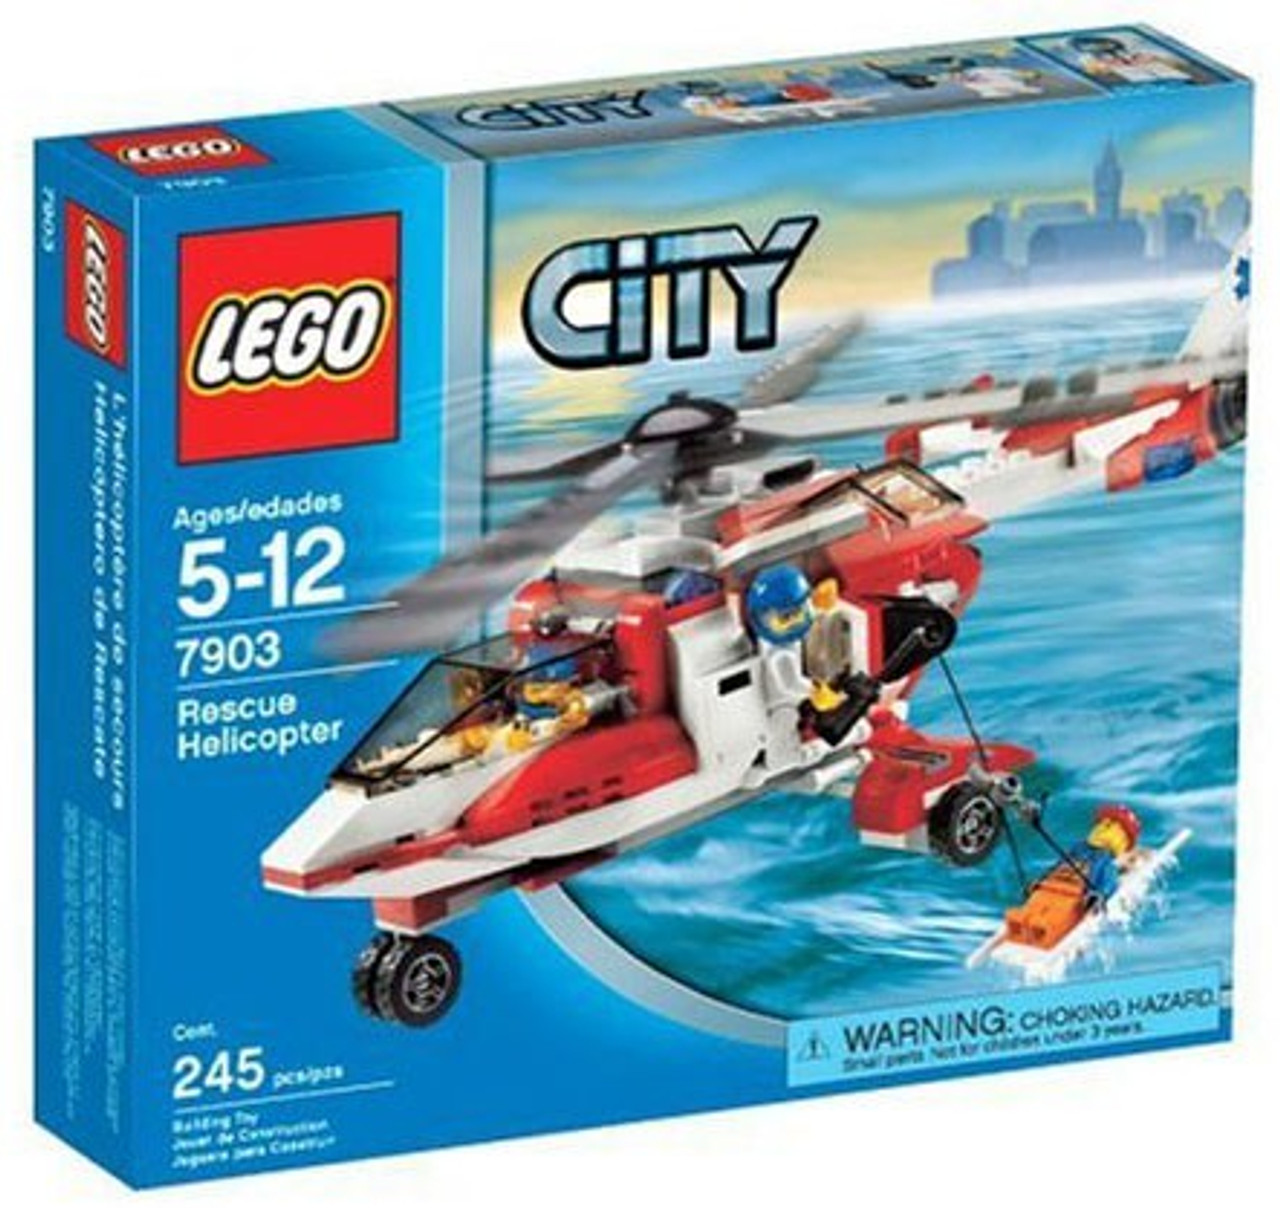 LEGO City Rescue Helicopter Set #7903